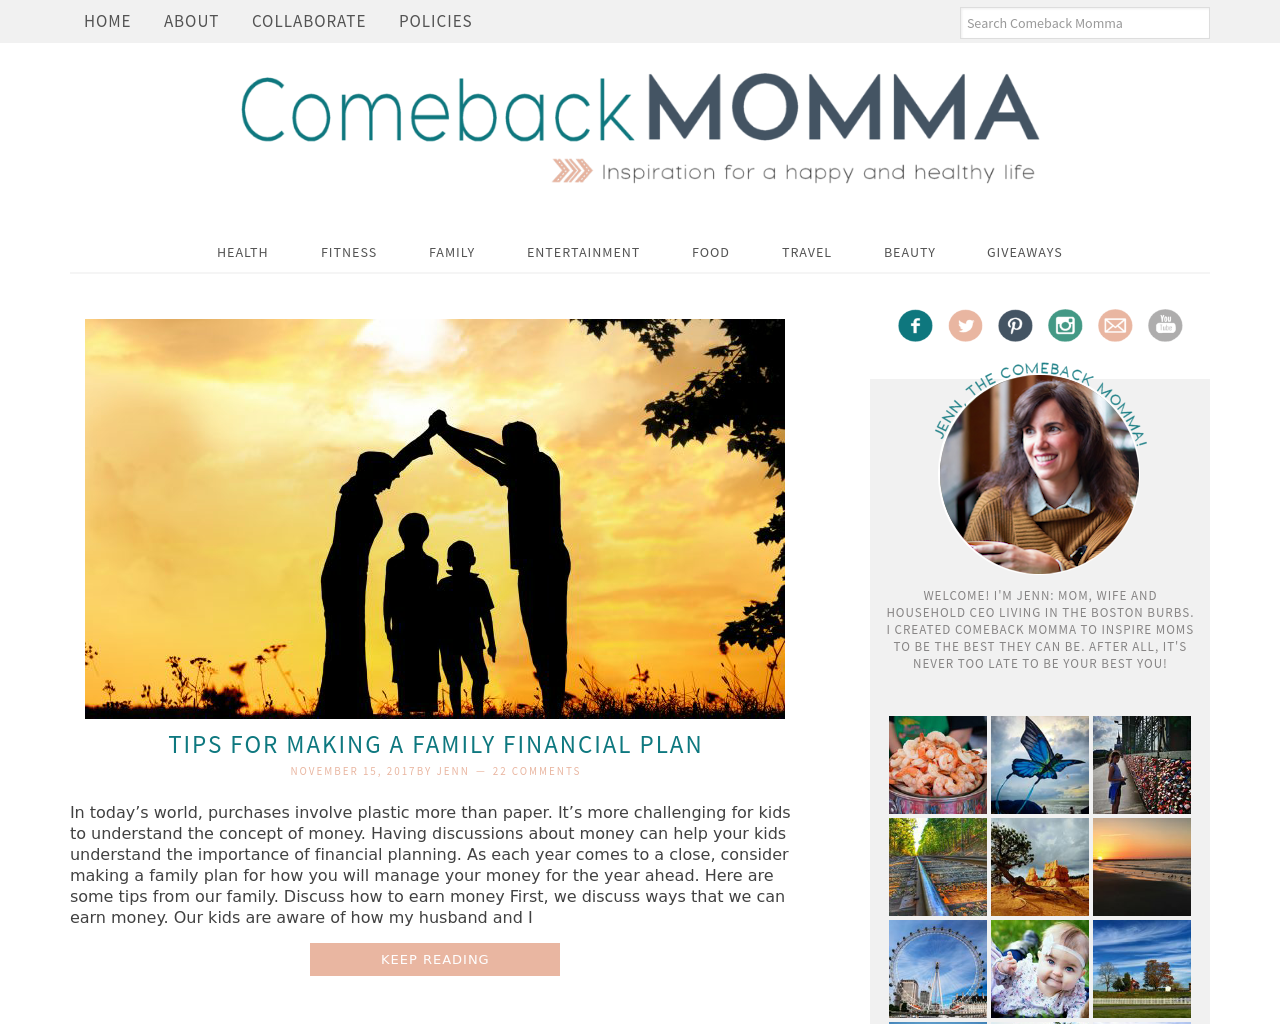 Comeback-Momma-Advertising-Reviews-Pricing